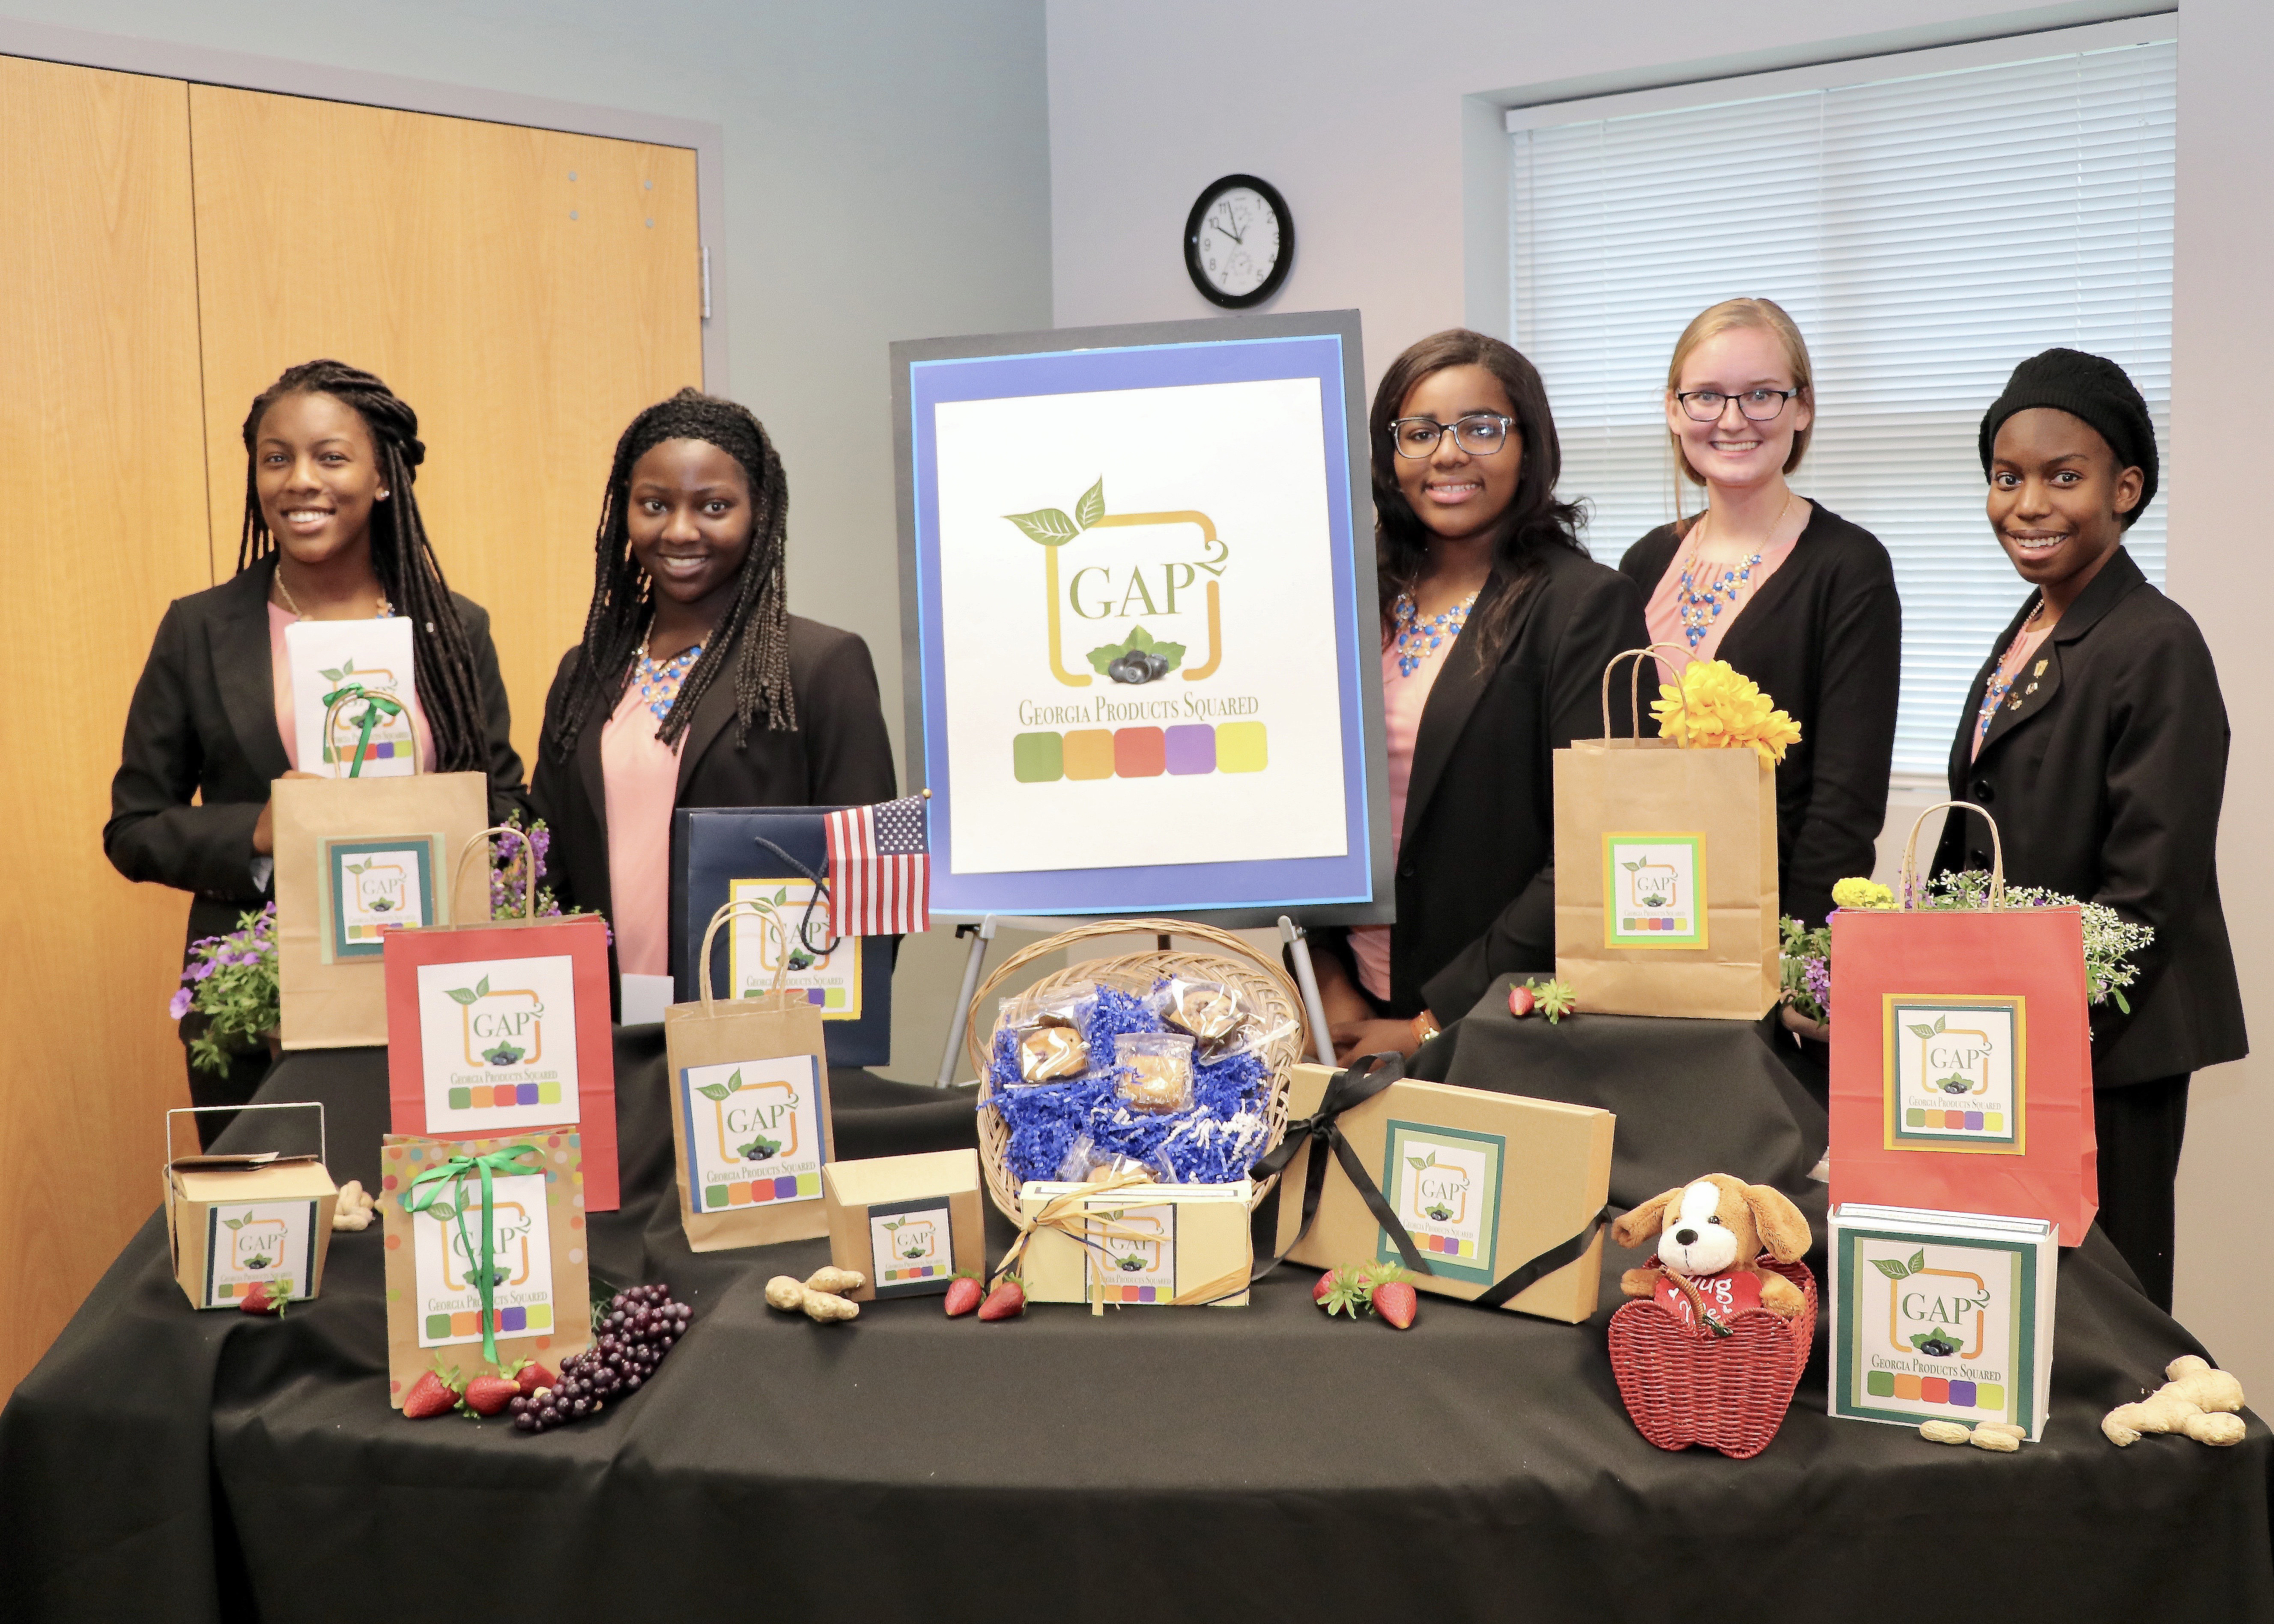 Chatham County 4-H Club members, from left, Sonté Davis, Faythe Robinson, Ashley Johnson, Anna Morris and Amari McDonald pose with the display for their award-winning GAP2 concept for locally sourced baked goods.